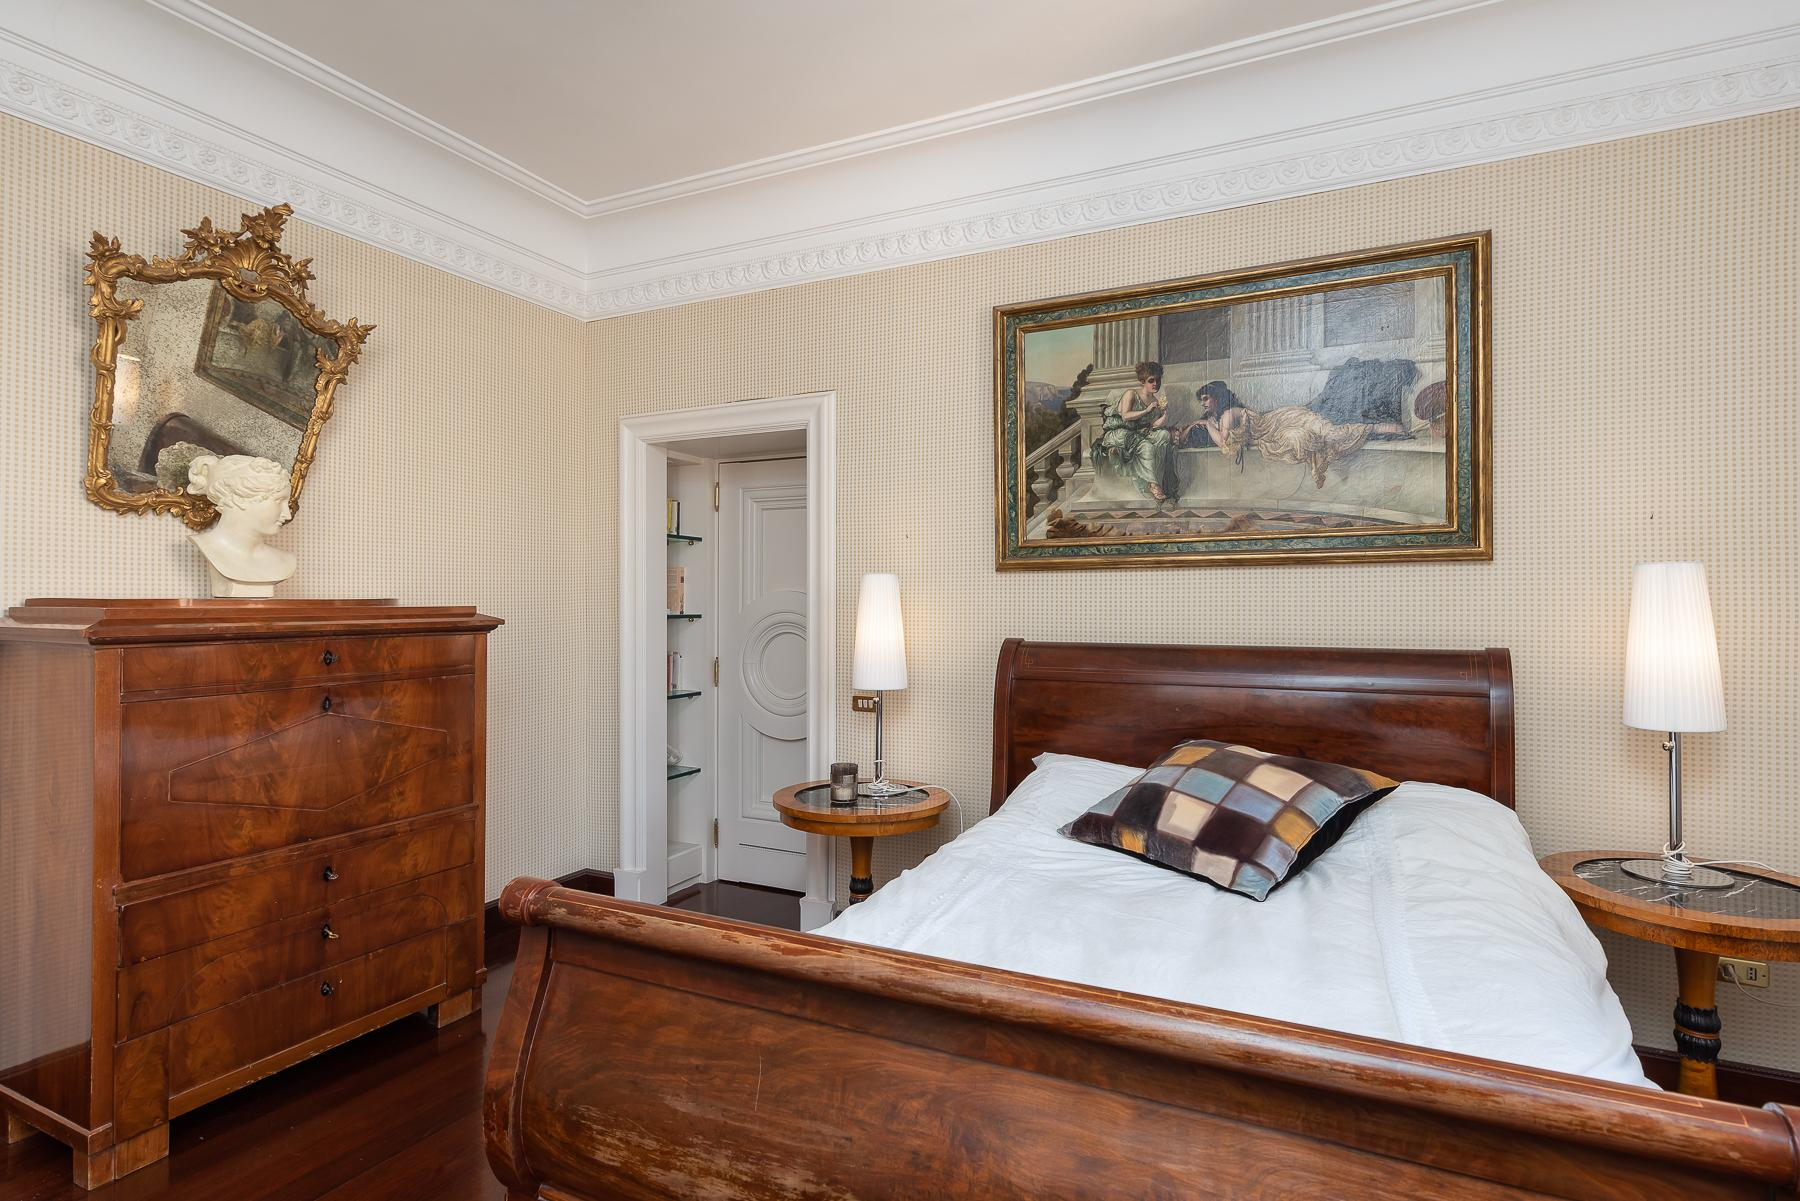 Marvelous pied a terre in an historic palazzo - 14